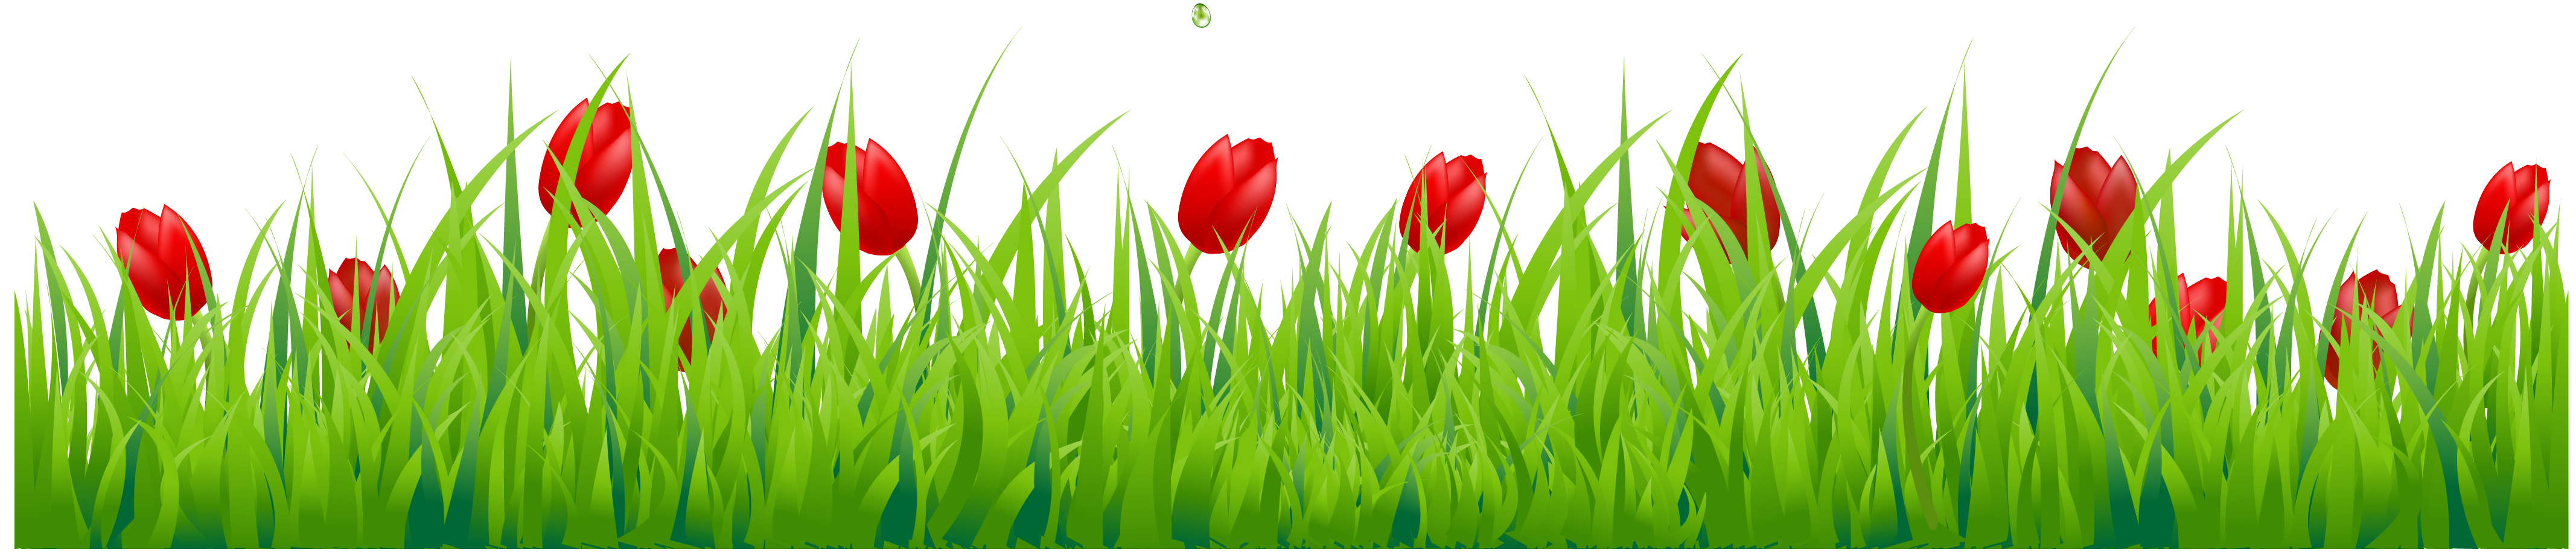 Spring flowers border png. Grass with red tulips